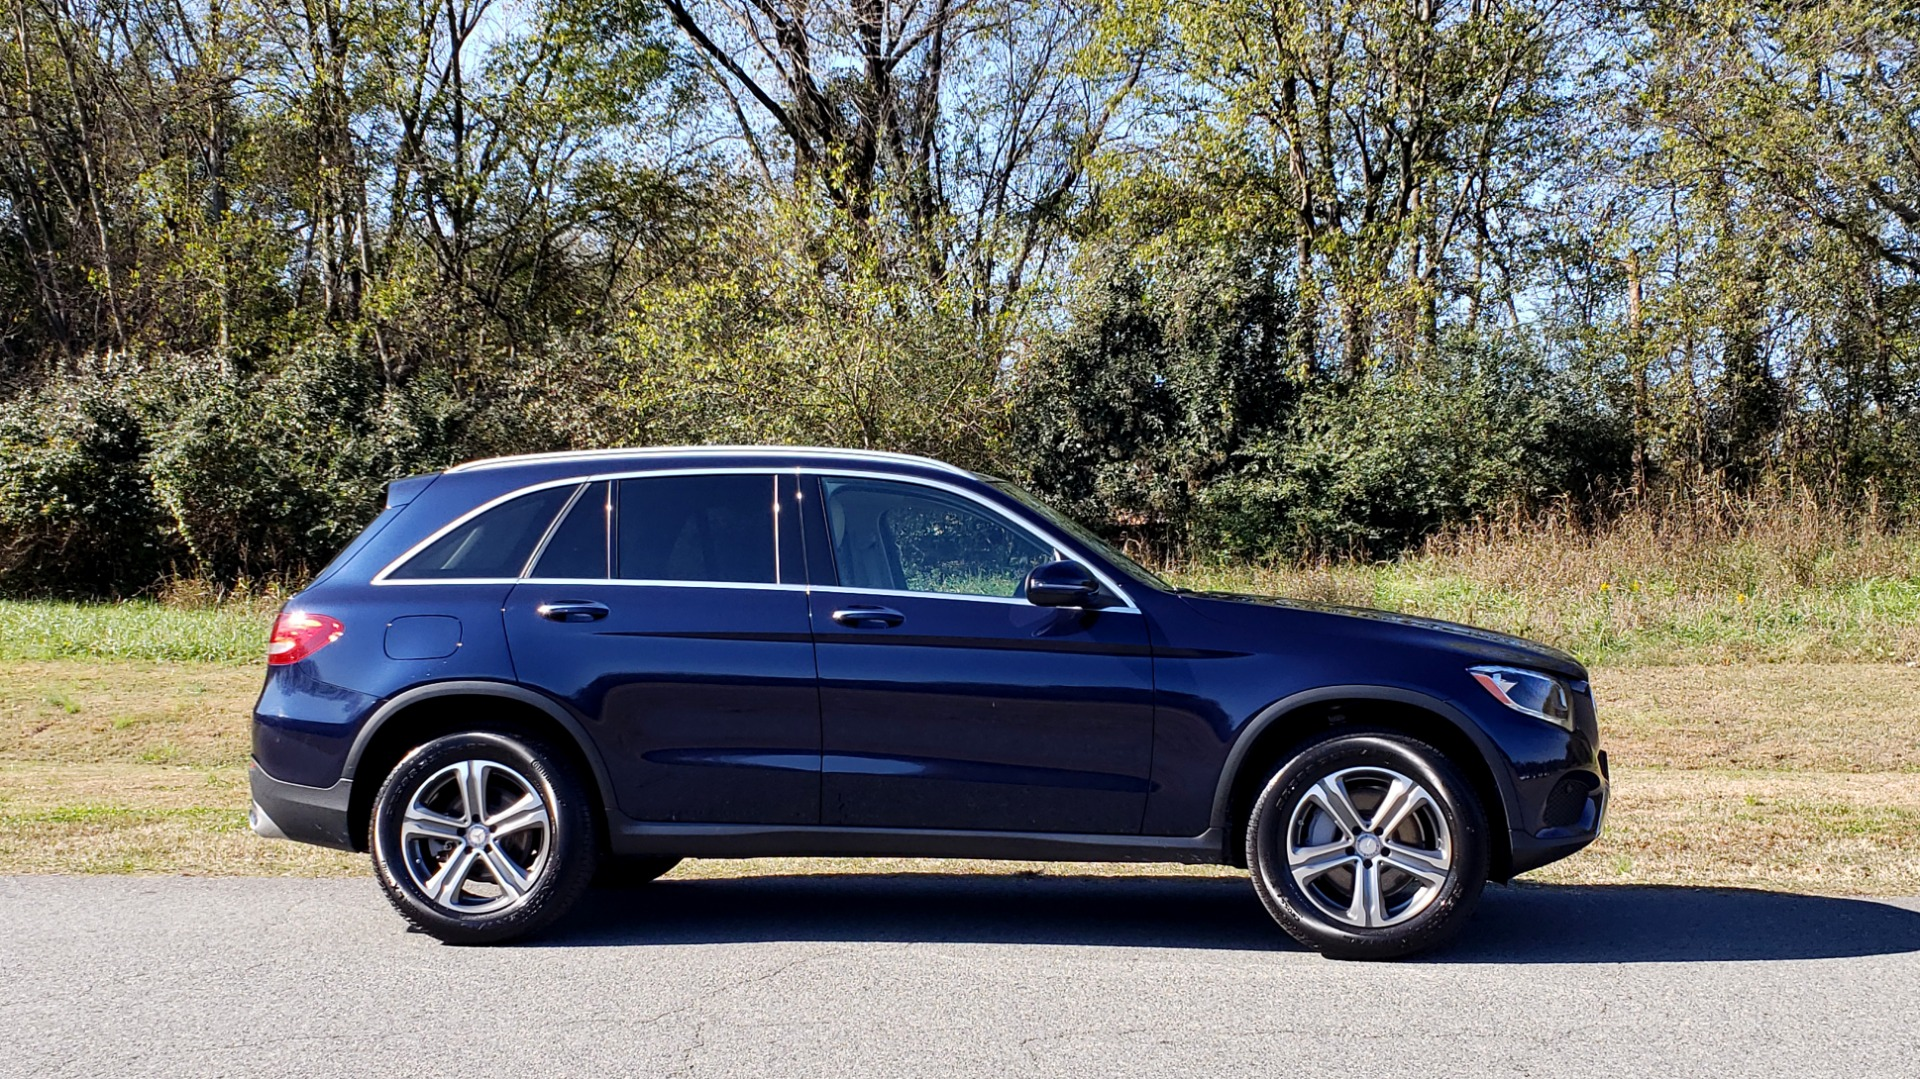 Used 2017 Mercedes-Benz GLC 300 4MATIC / PREM / NAV / KEYLESS-GO / SUNROOF / REARVIEW for sale Sold at Formula Imports in Charlotte NC 28227 5